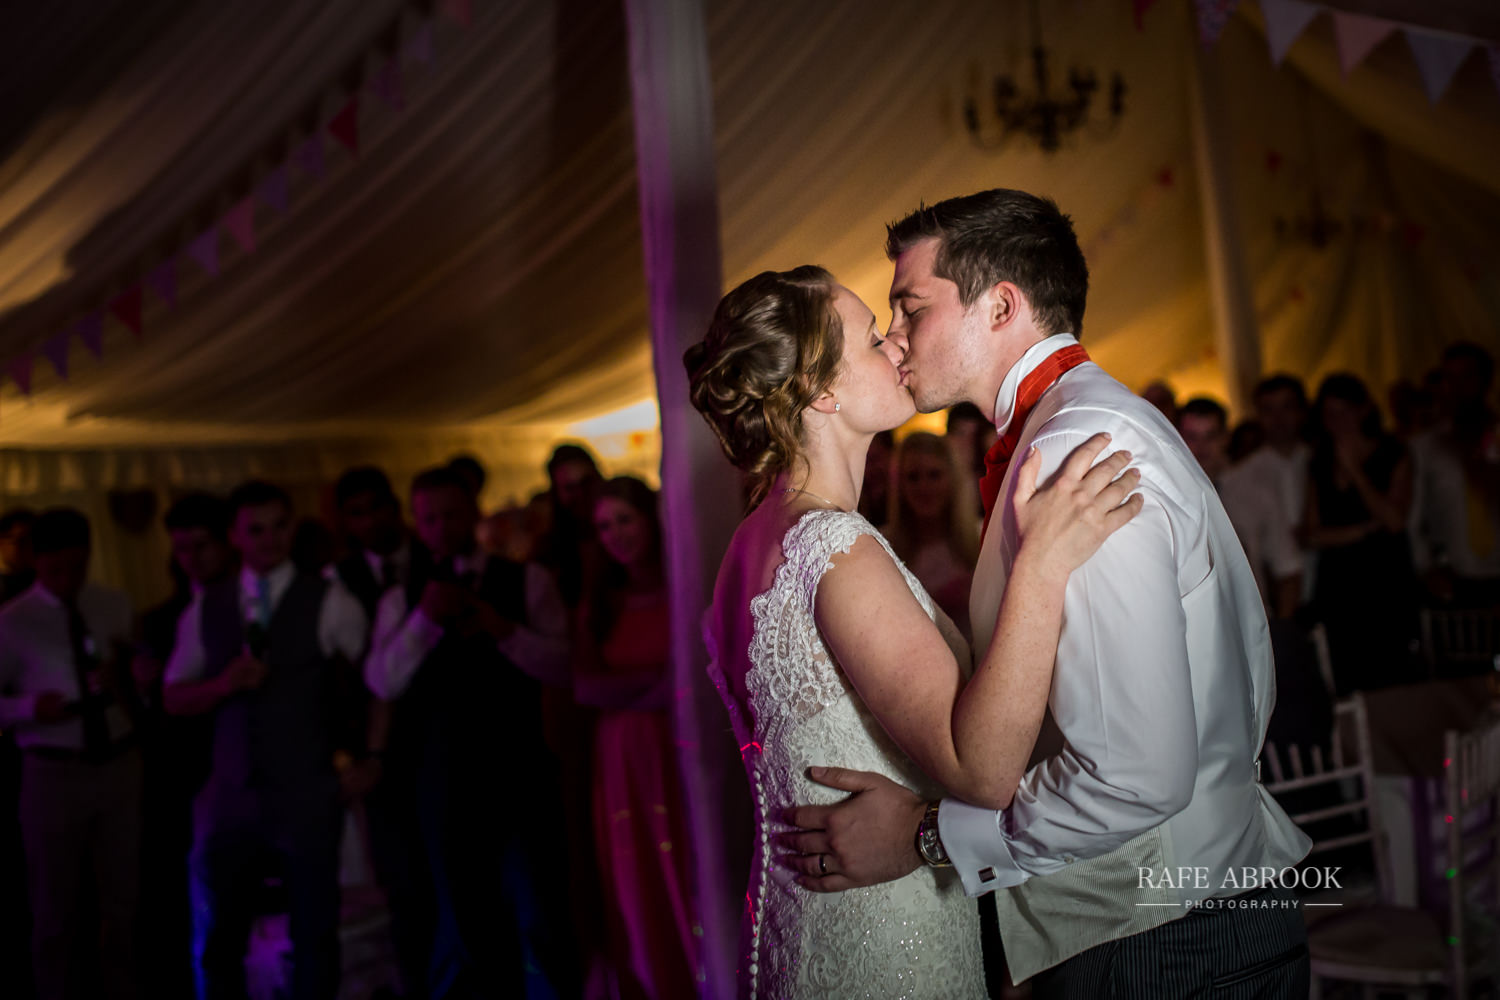 st albans cathedral wedding harpenden rafe abrook photography hertfordshire wedding photographer-1045.jpg